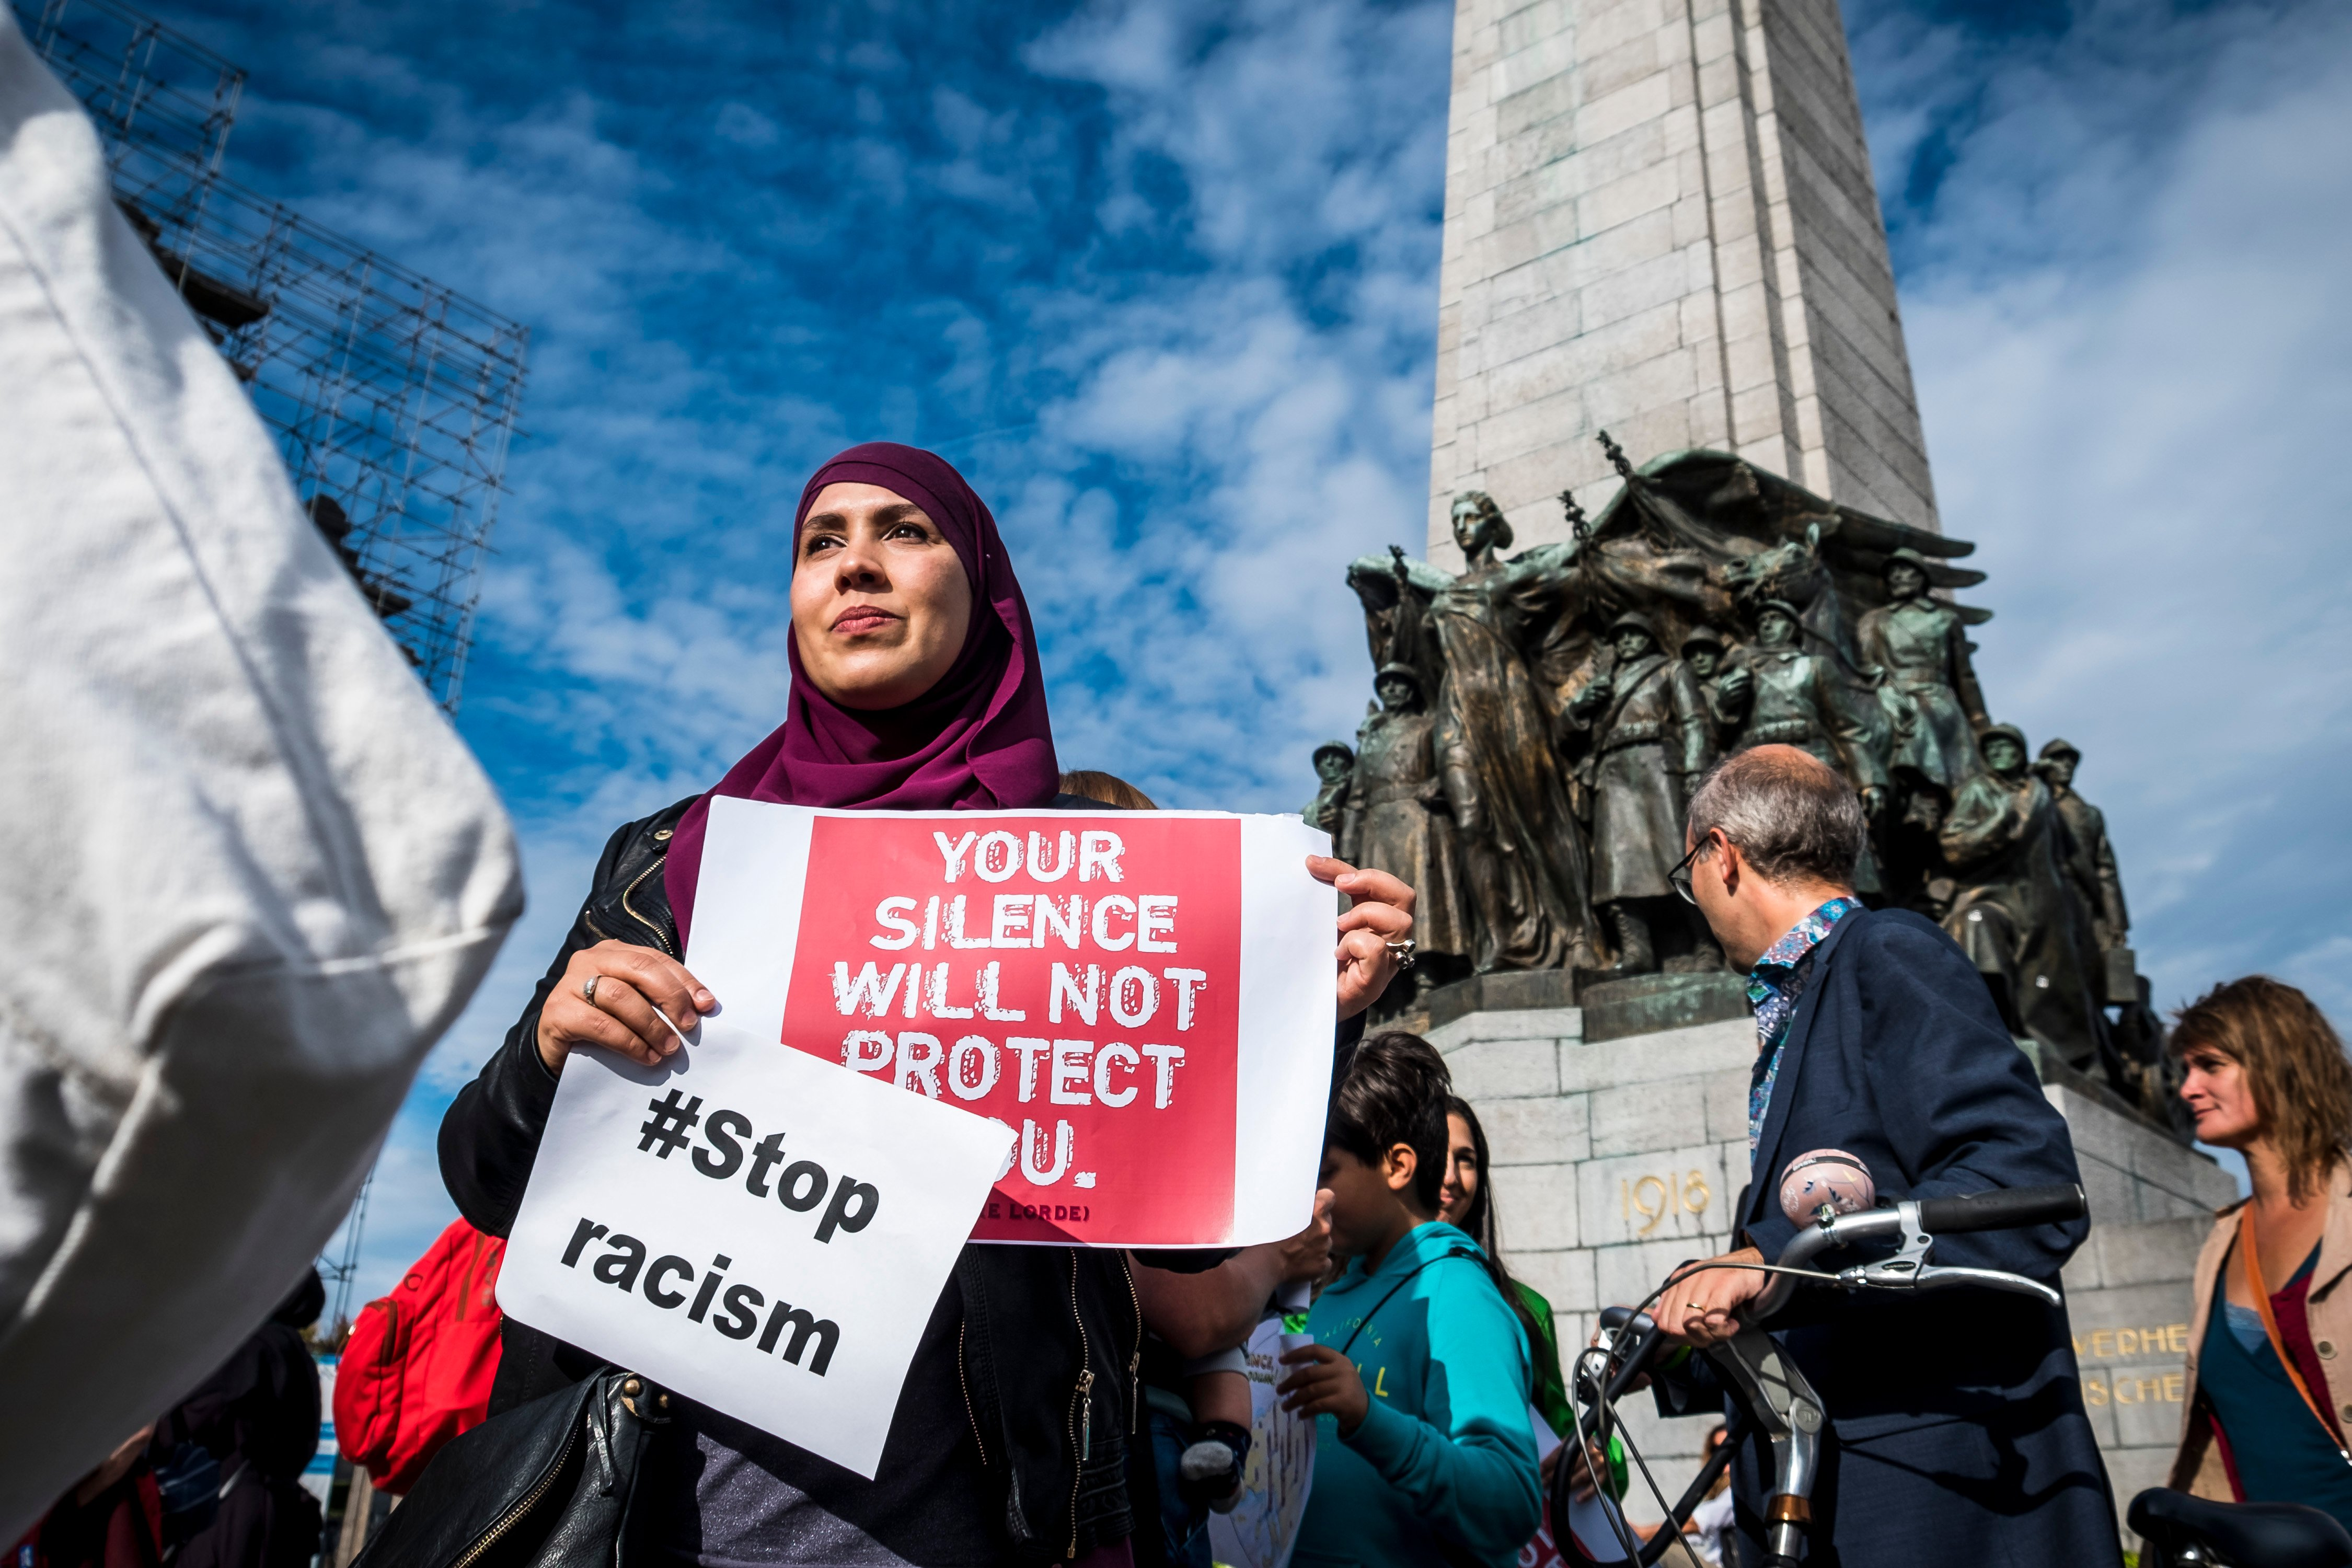 People hold posters as they protest against 'hate and islamophobia' in Brussels (AFP)